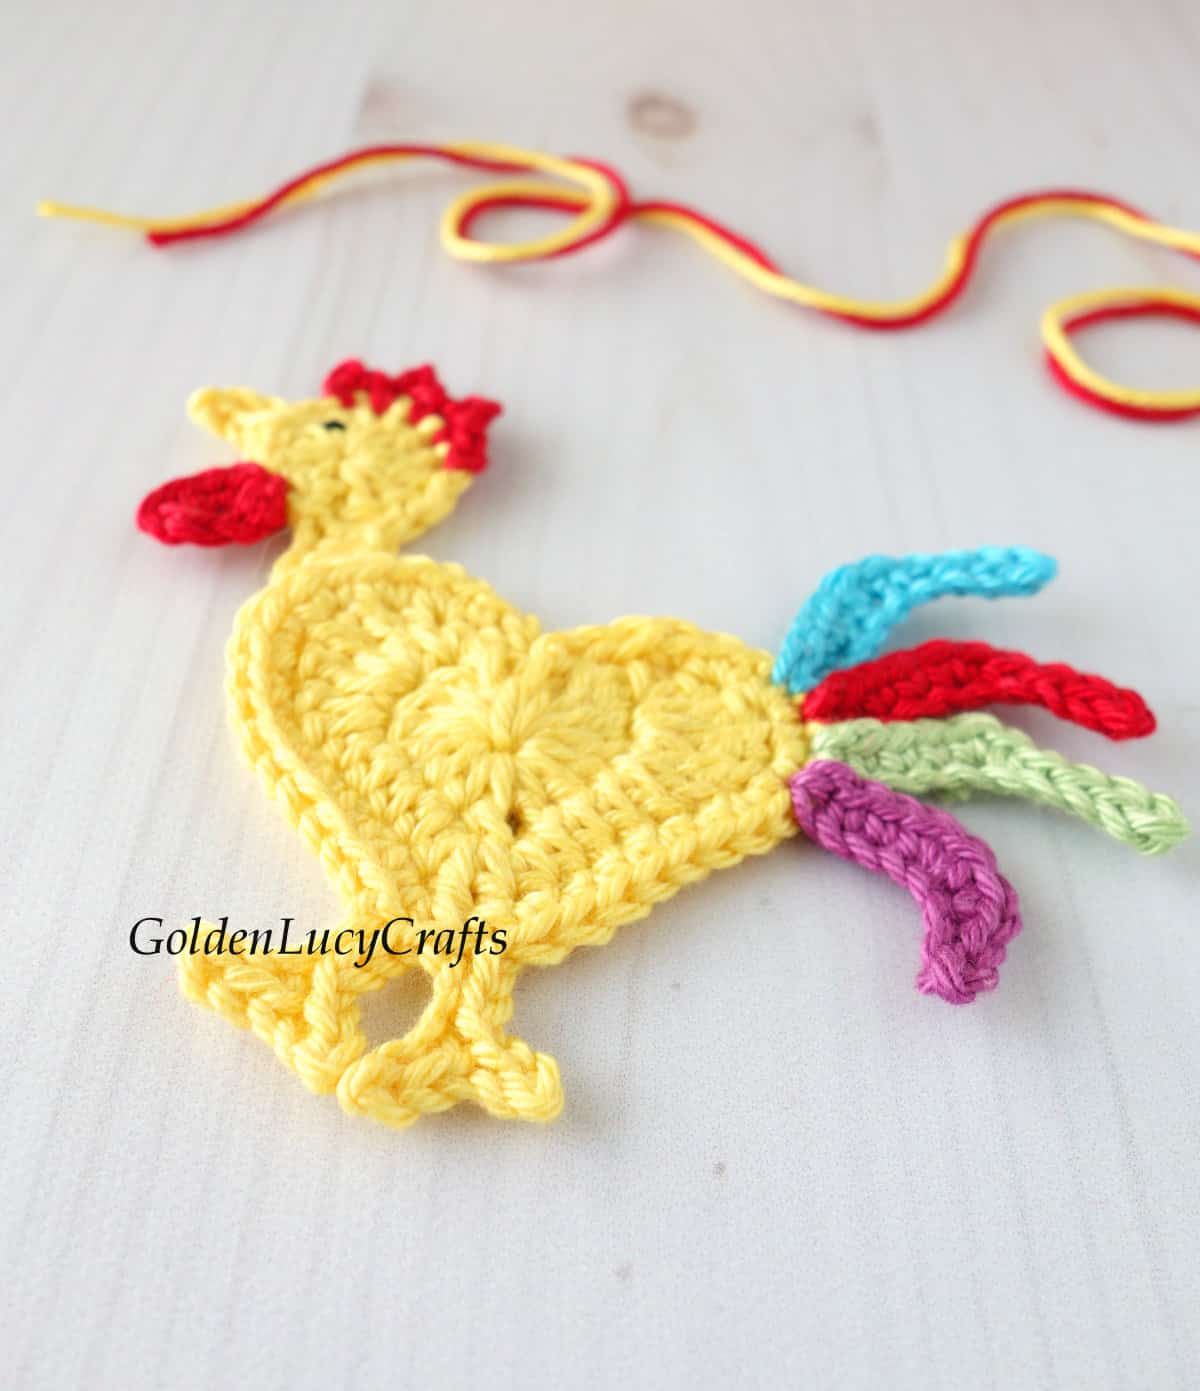 Crocheted rooster applique close up image.